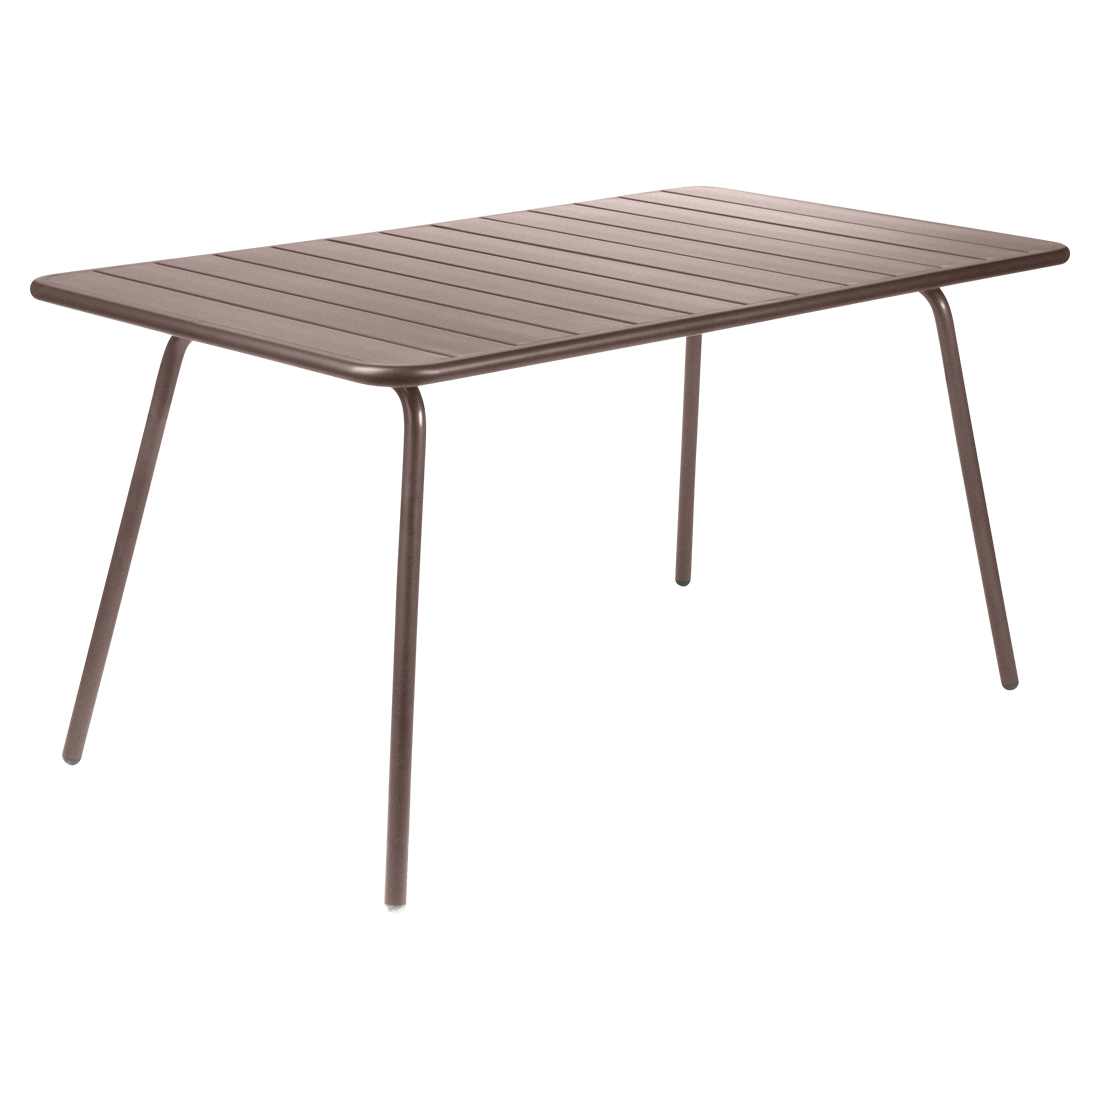 FERMOB Luxembourg 4-6 Seater Outdoor Dining Table